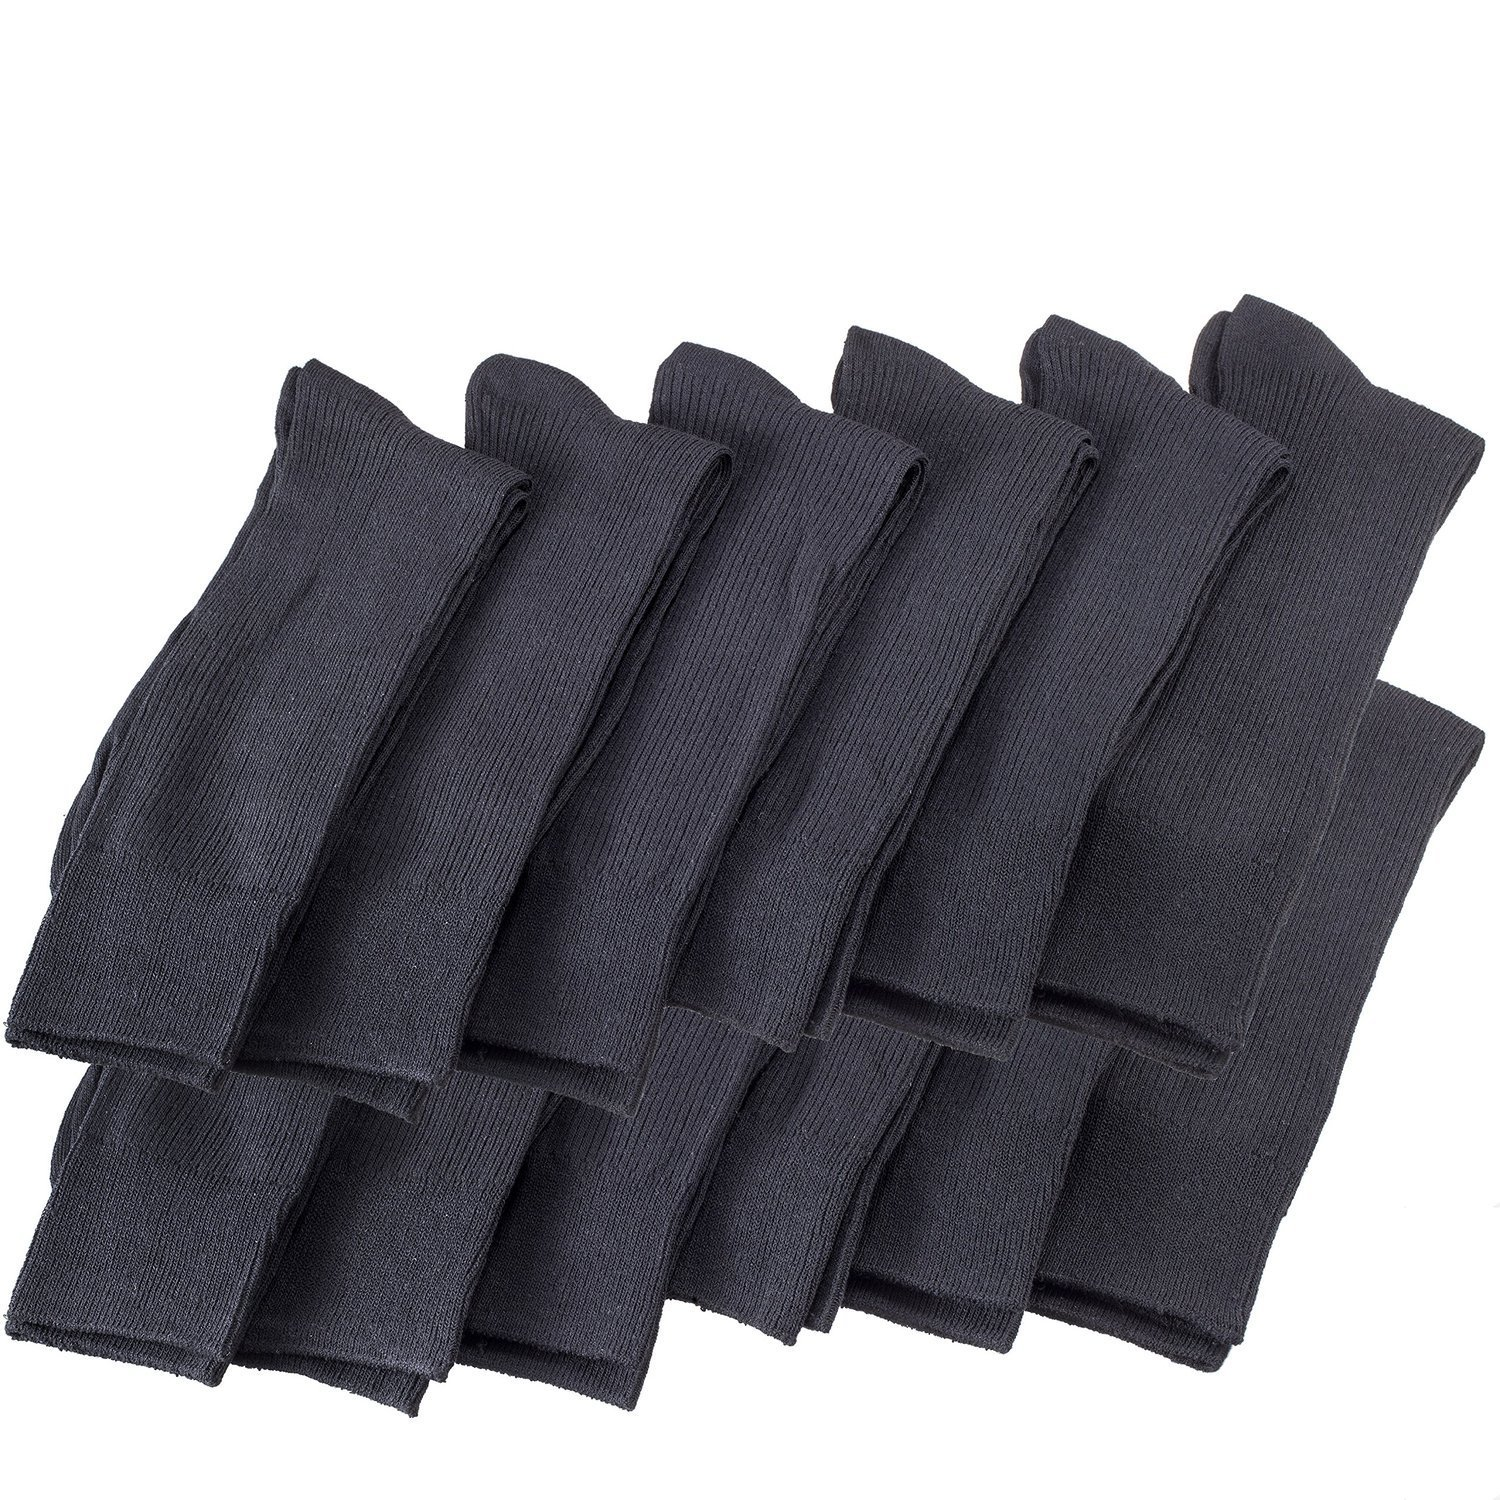 12 Pairs Of excell Mens Black Dress Diabetic Socks, Cotton Blend, Sock Size 10-13